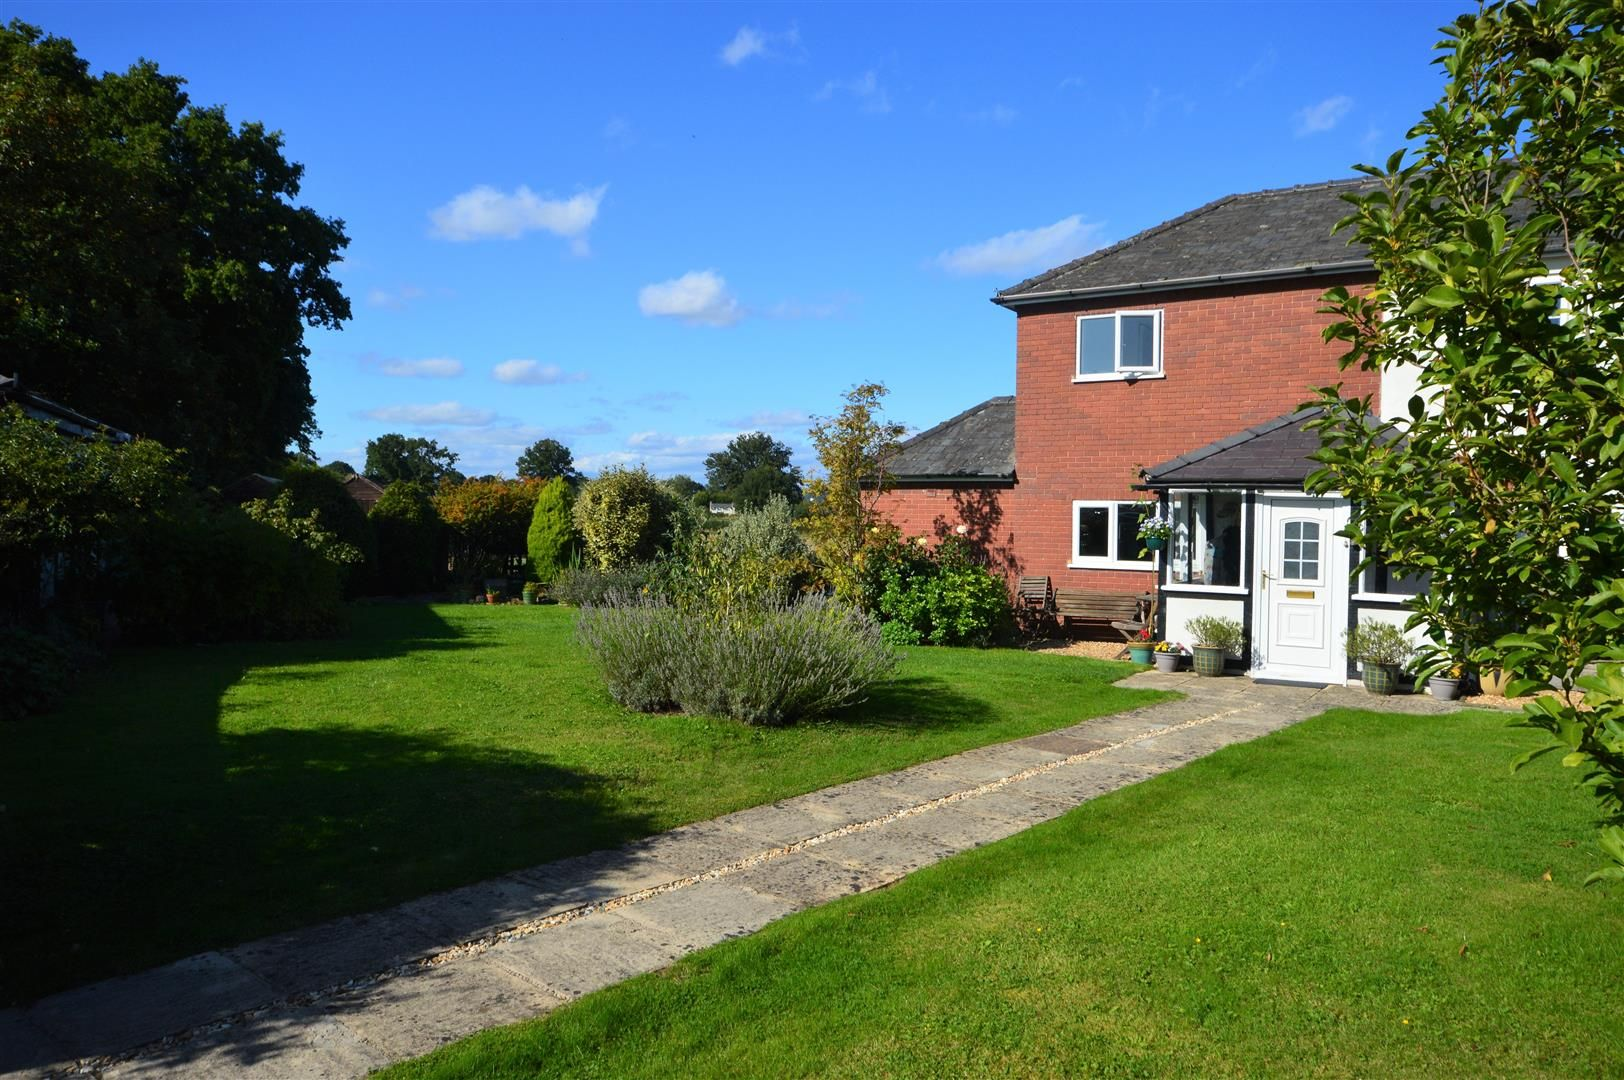 4 bed detached for sale in Shirlheath  - Property Image 15